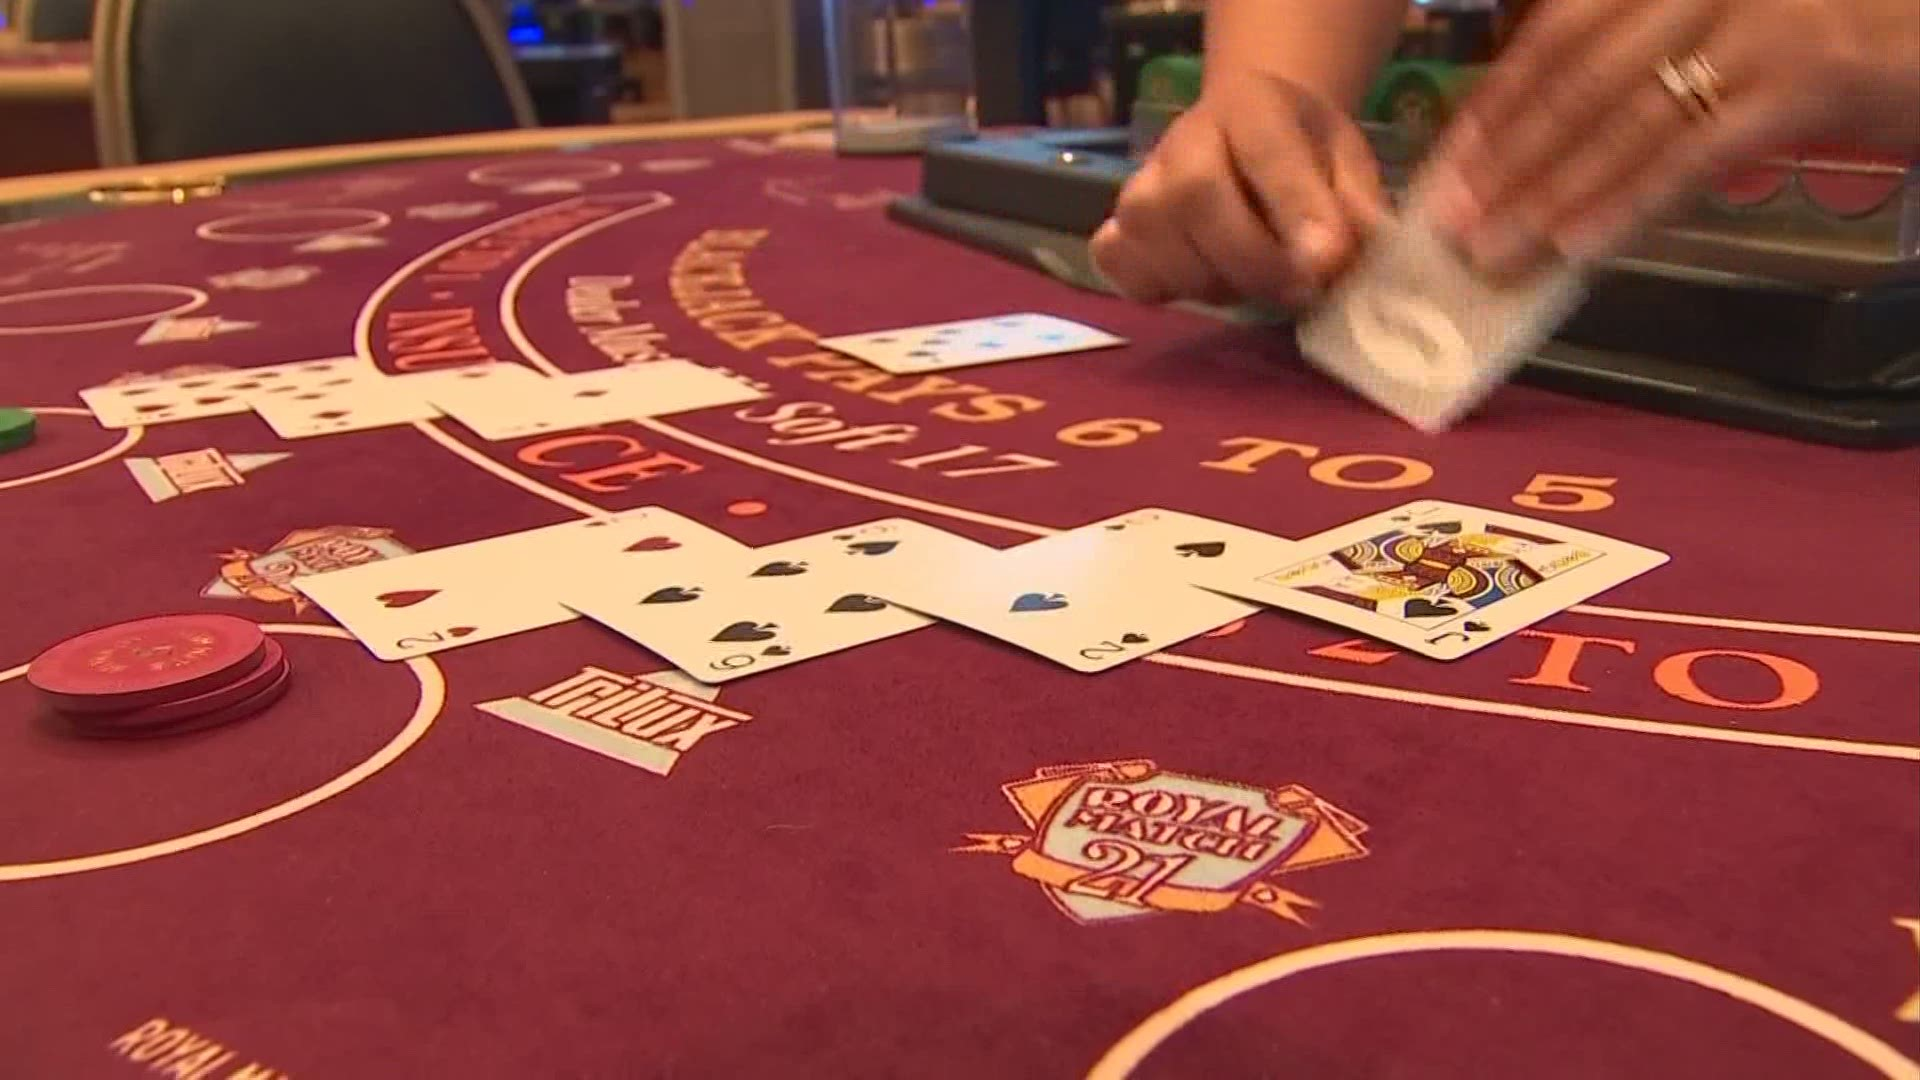 Gambling addict talks dangers of casinos reopening in Ohio | 10tv.com